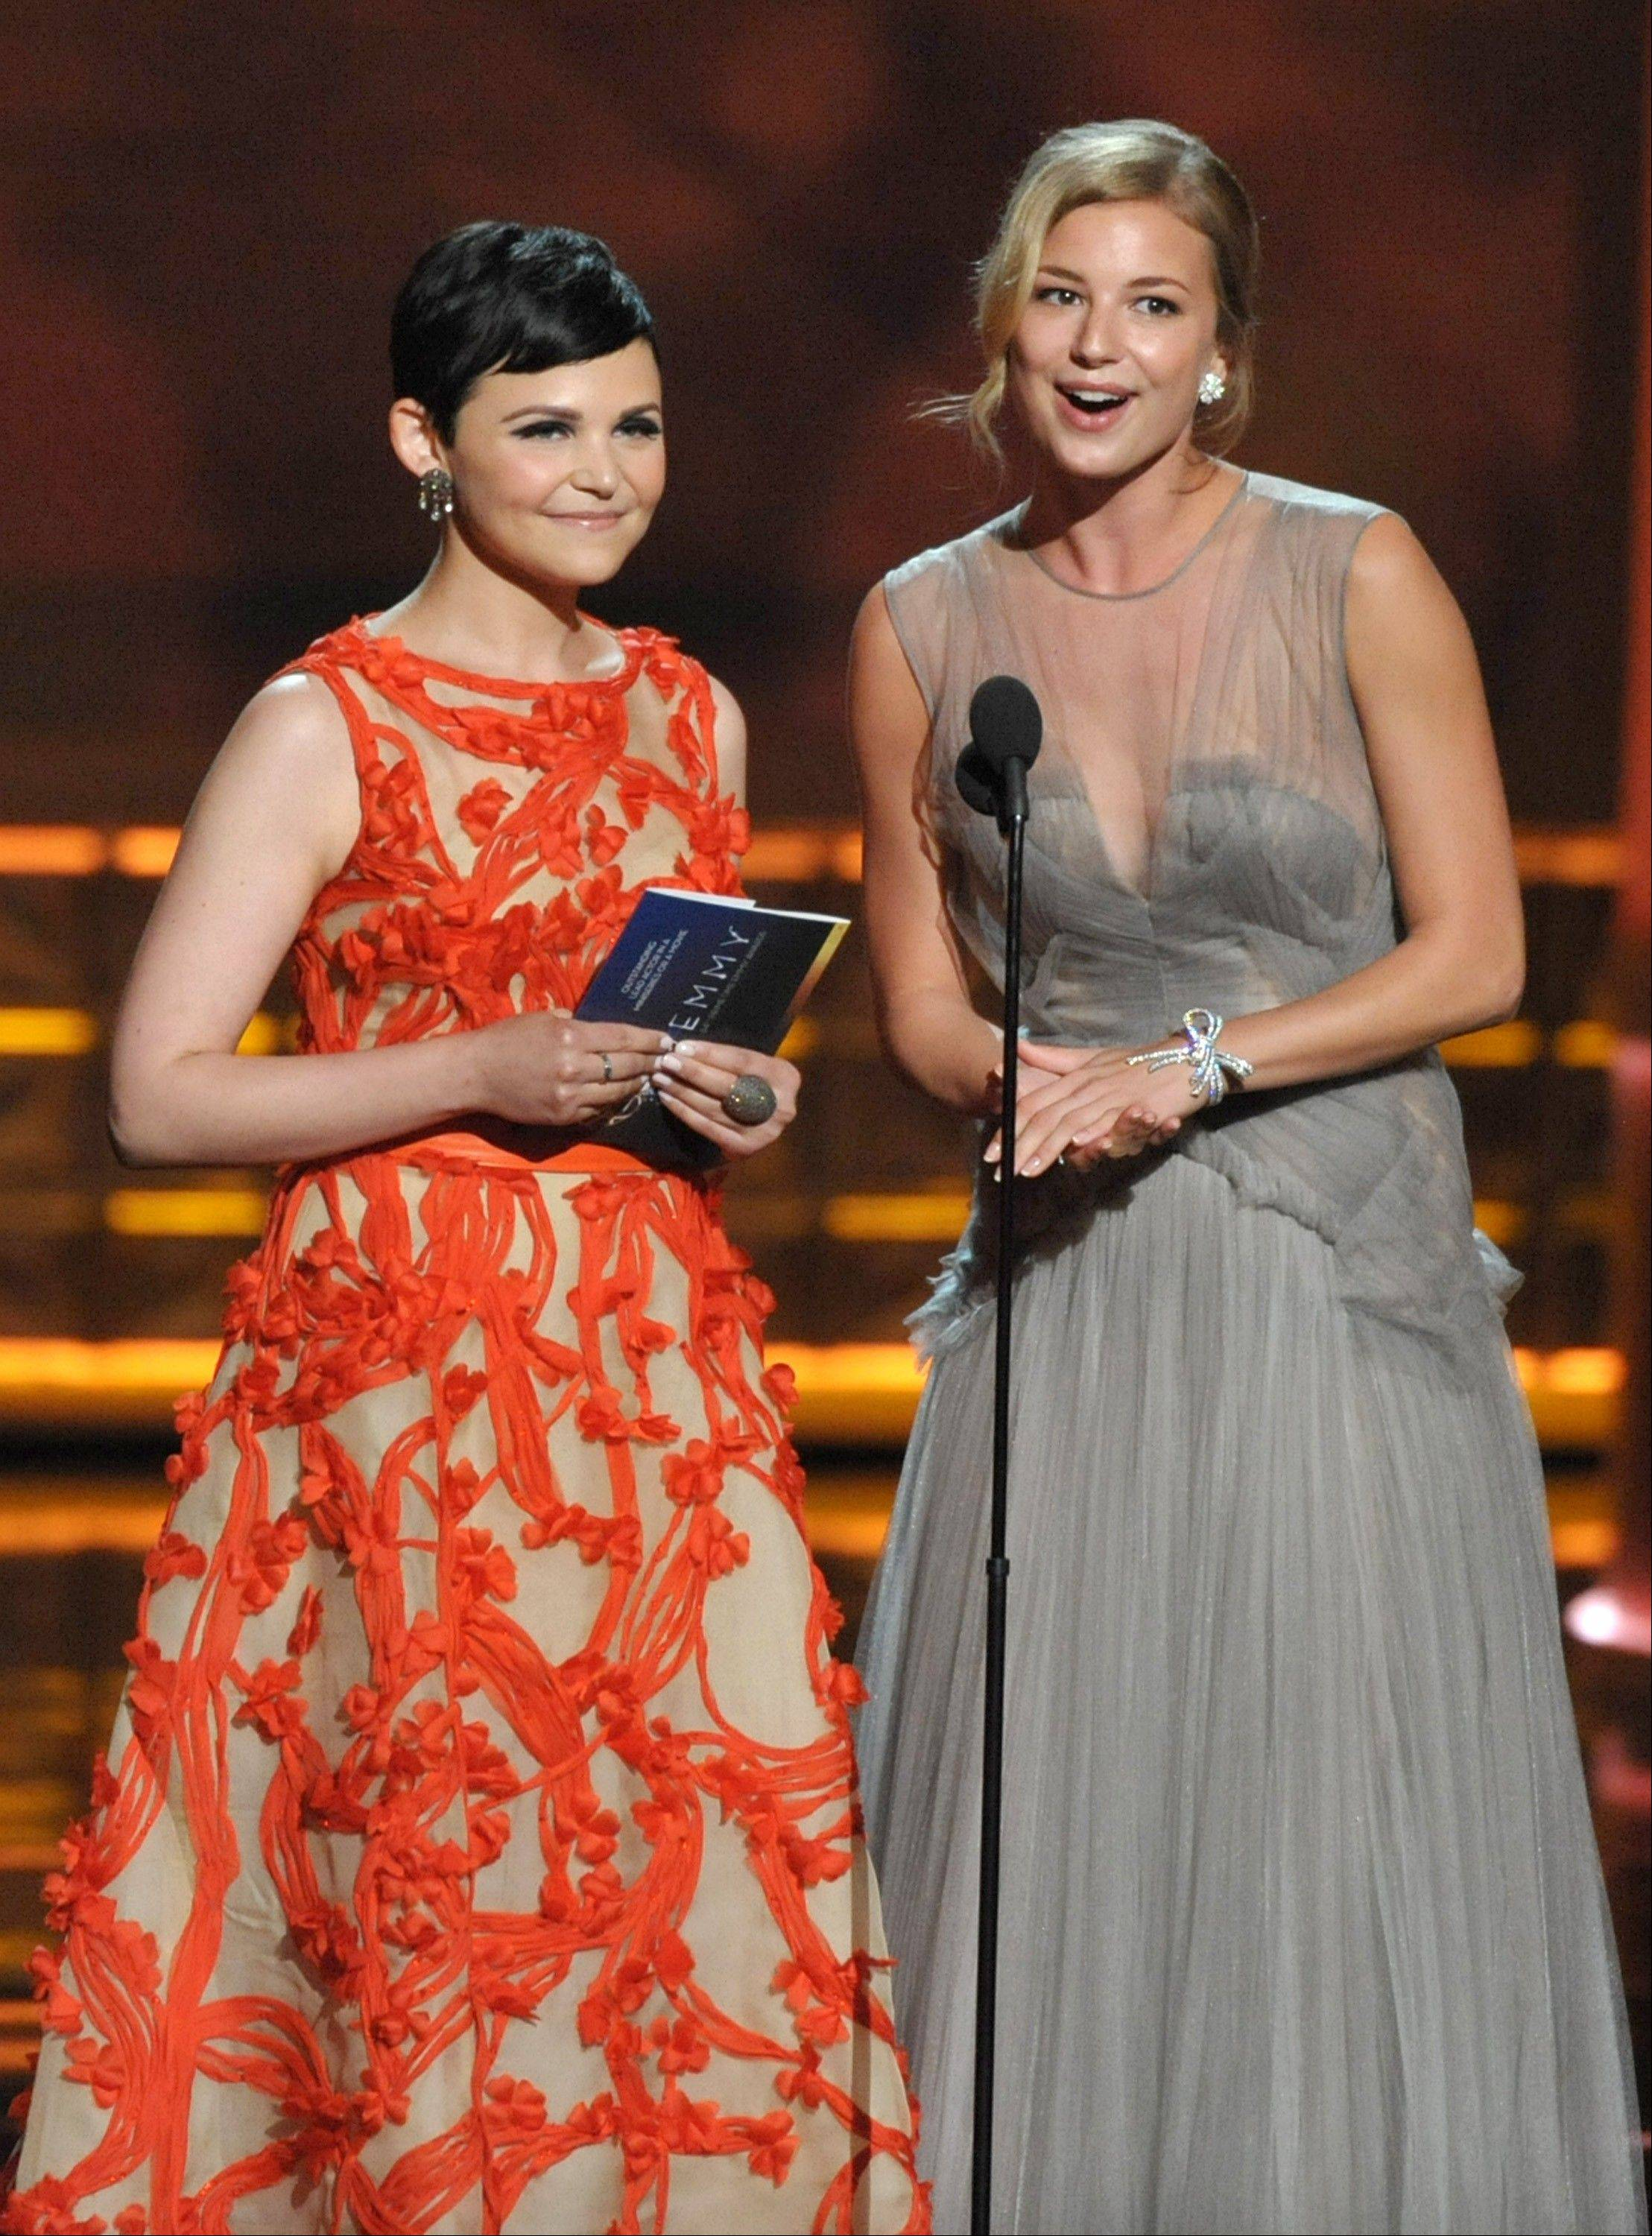 Actress Ginnifer Goodwin, left and actress Emily VanCamp speak onstage at the 64th Primetime Emmy Awards at the Nokia Theatre on Sunday, Sept. 23, 2012, in Los Angeles.